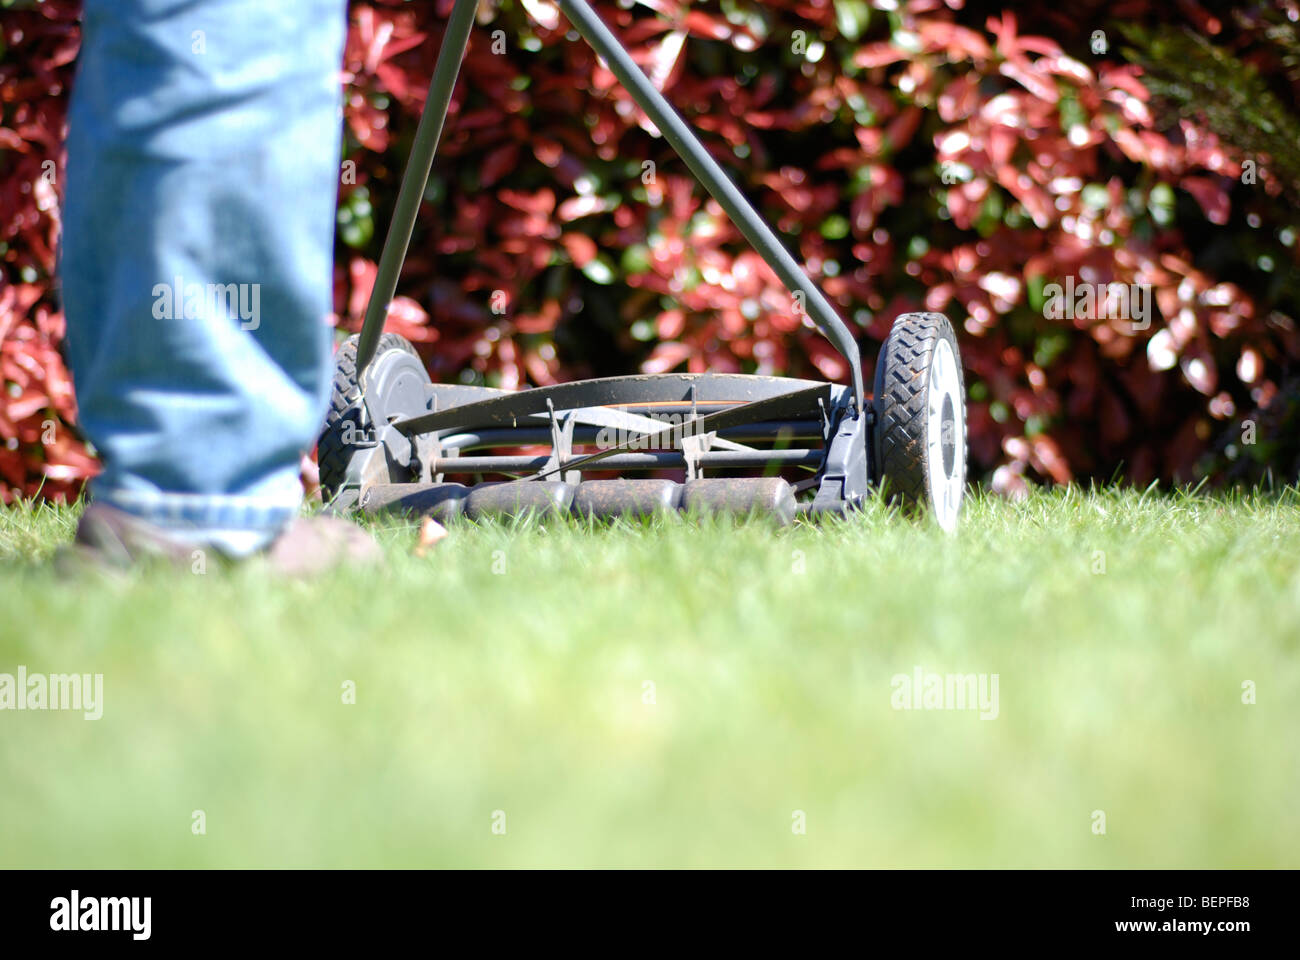 cutting-grass-with-a-push-mower-BEPFB8.j